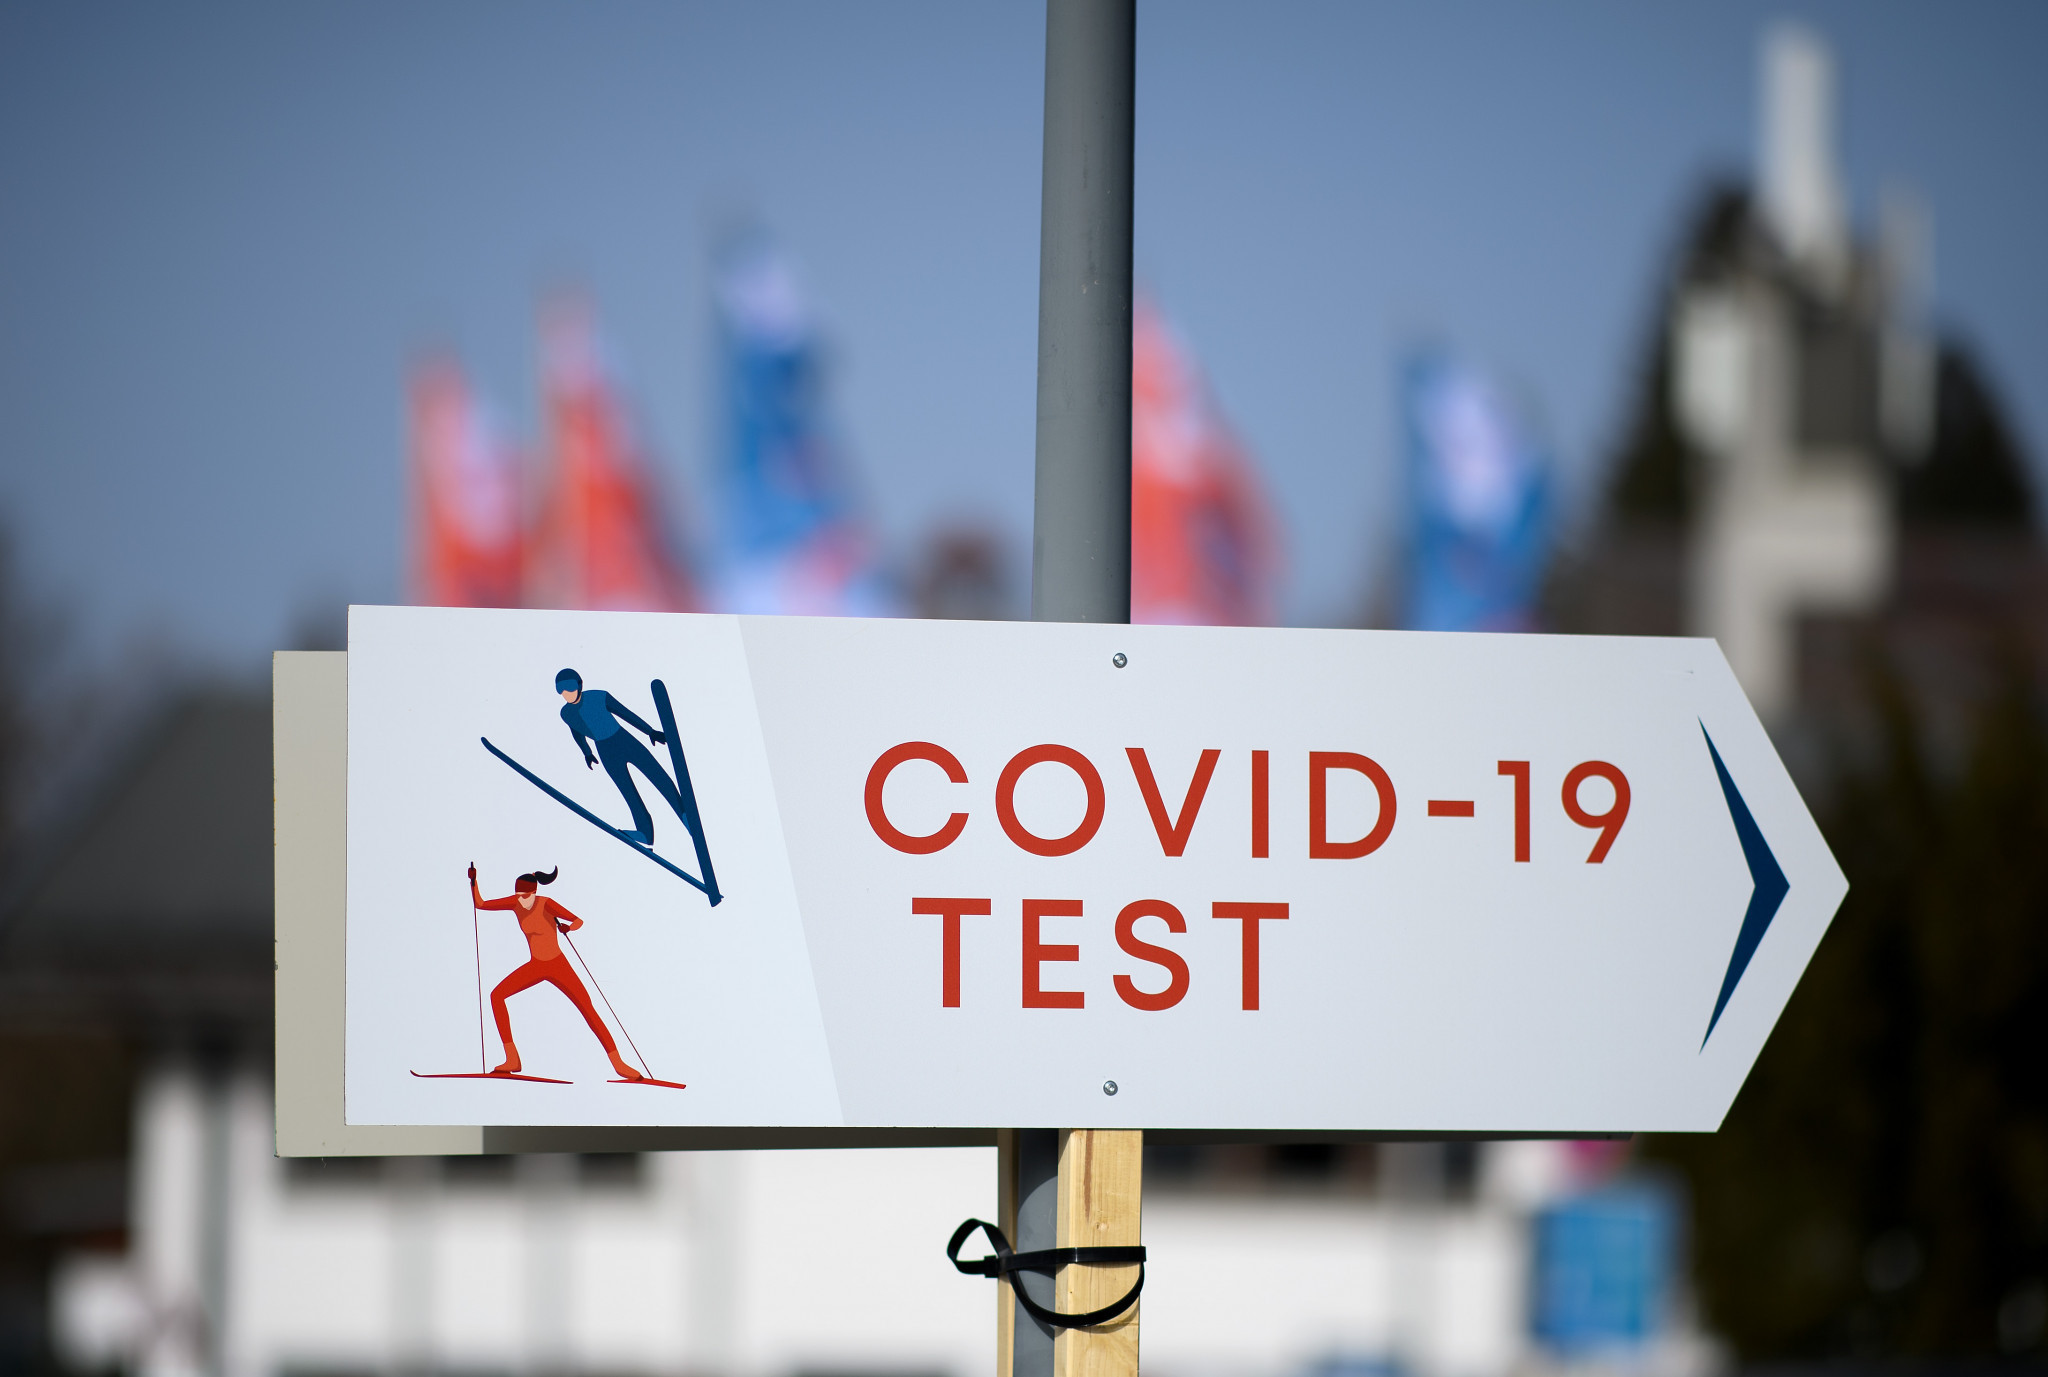 FIS passport reveals over 100,000 COVID-19 tests conducted last season with 105 positives